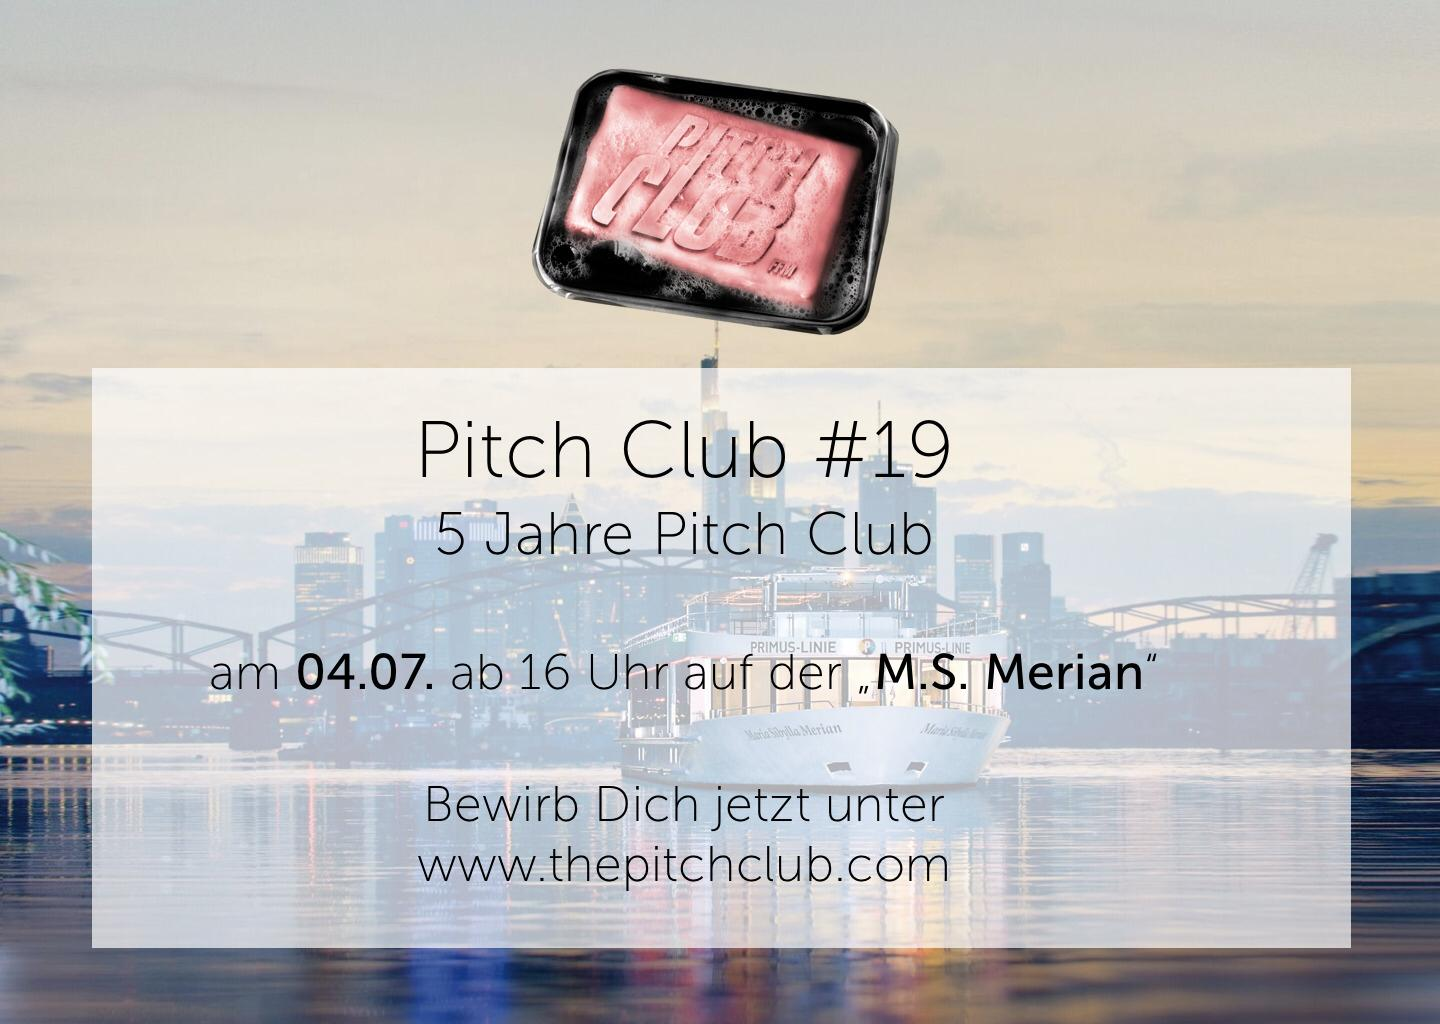 Pitch Club #19